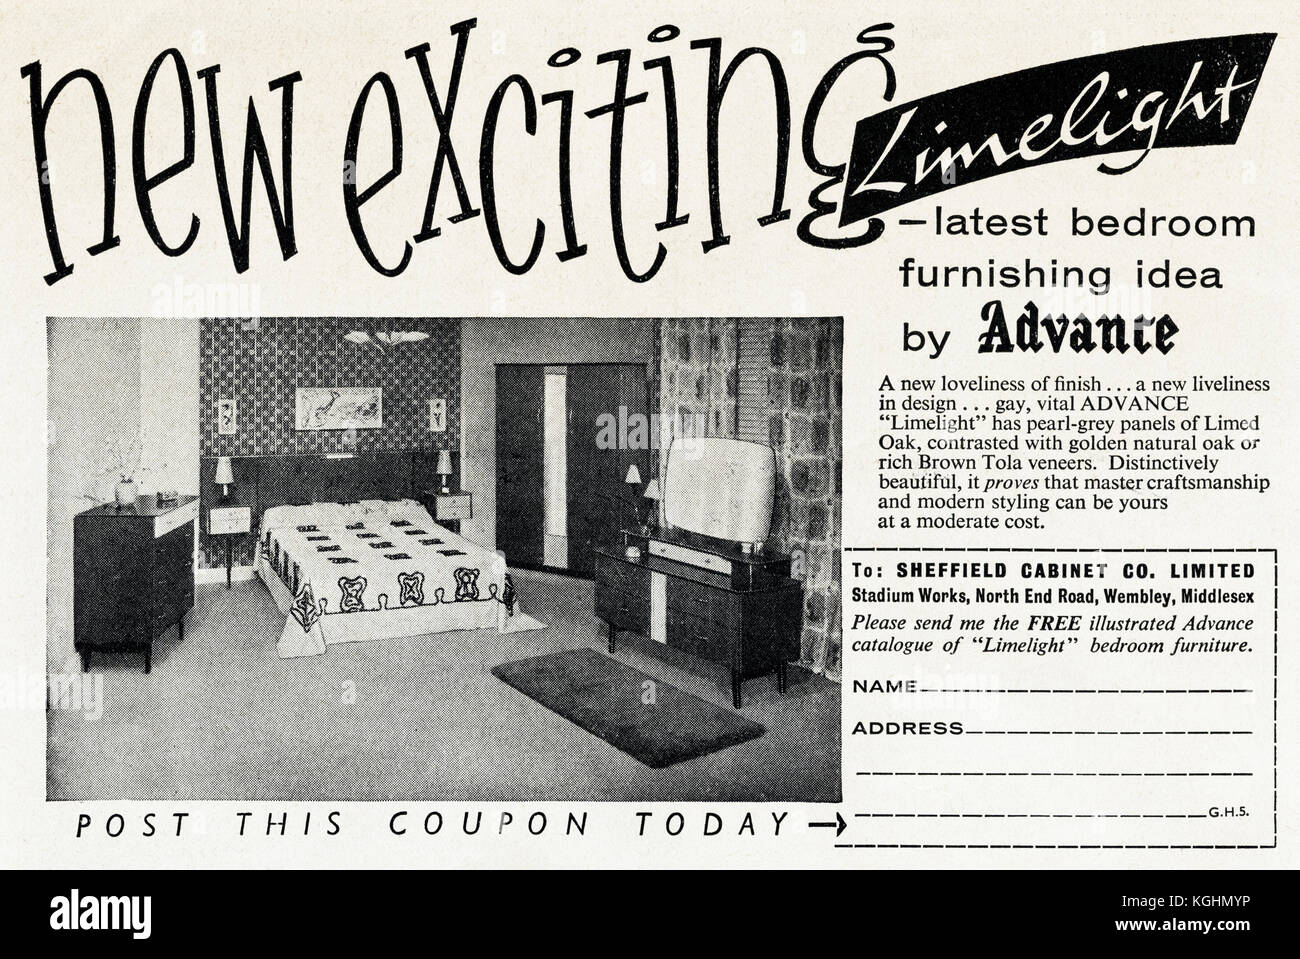 1950s Old Vintage Original Advert British Magazine Print Advertisement  Advertising Limelight Bedroom Furniture By Sheffield Cabinet Co Ltd Of  Wembley ...